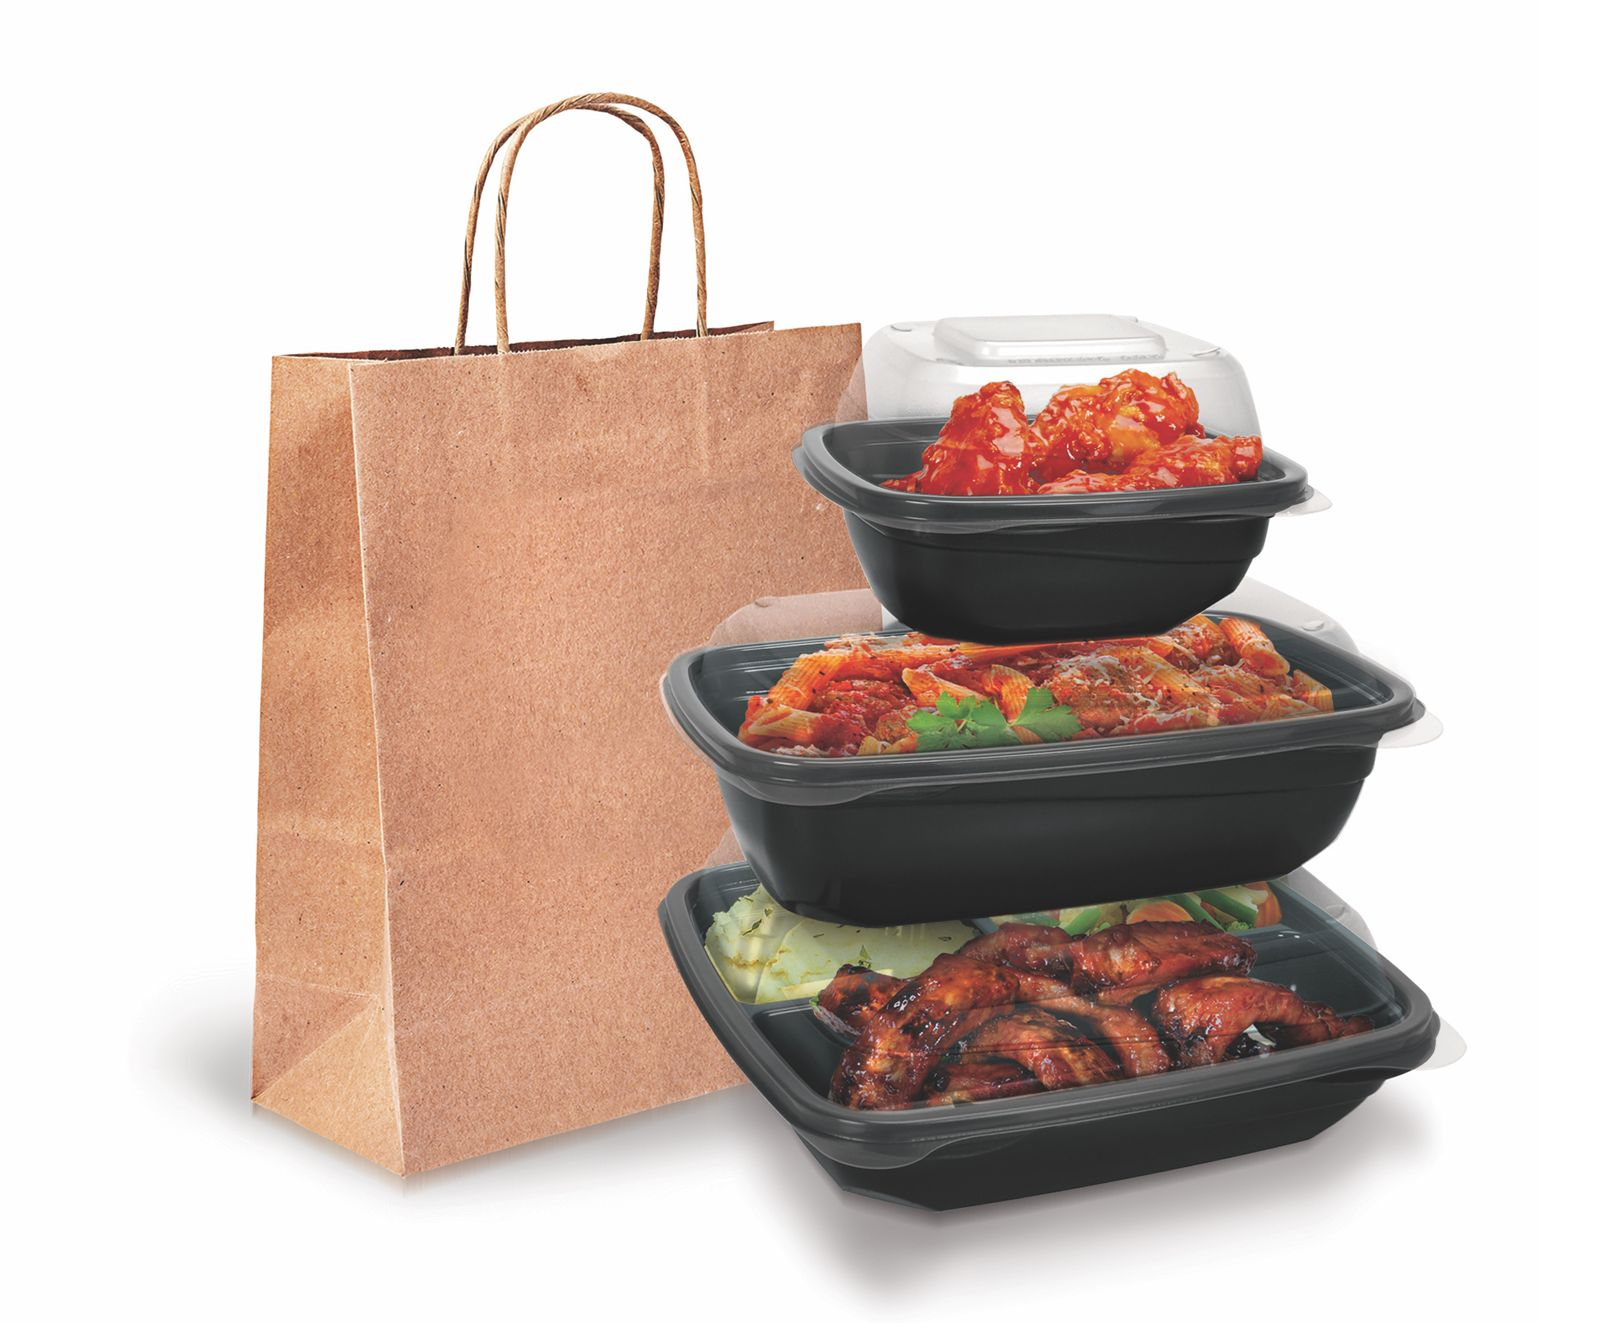 Novolex Introduces Hot Food Containers that Make Takeout and Deliveries Better than Ever